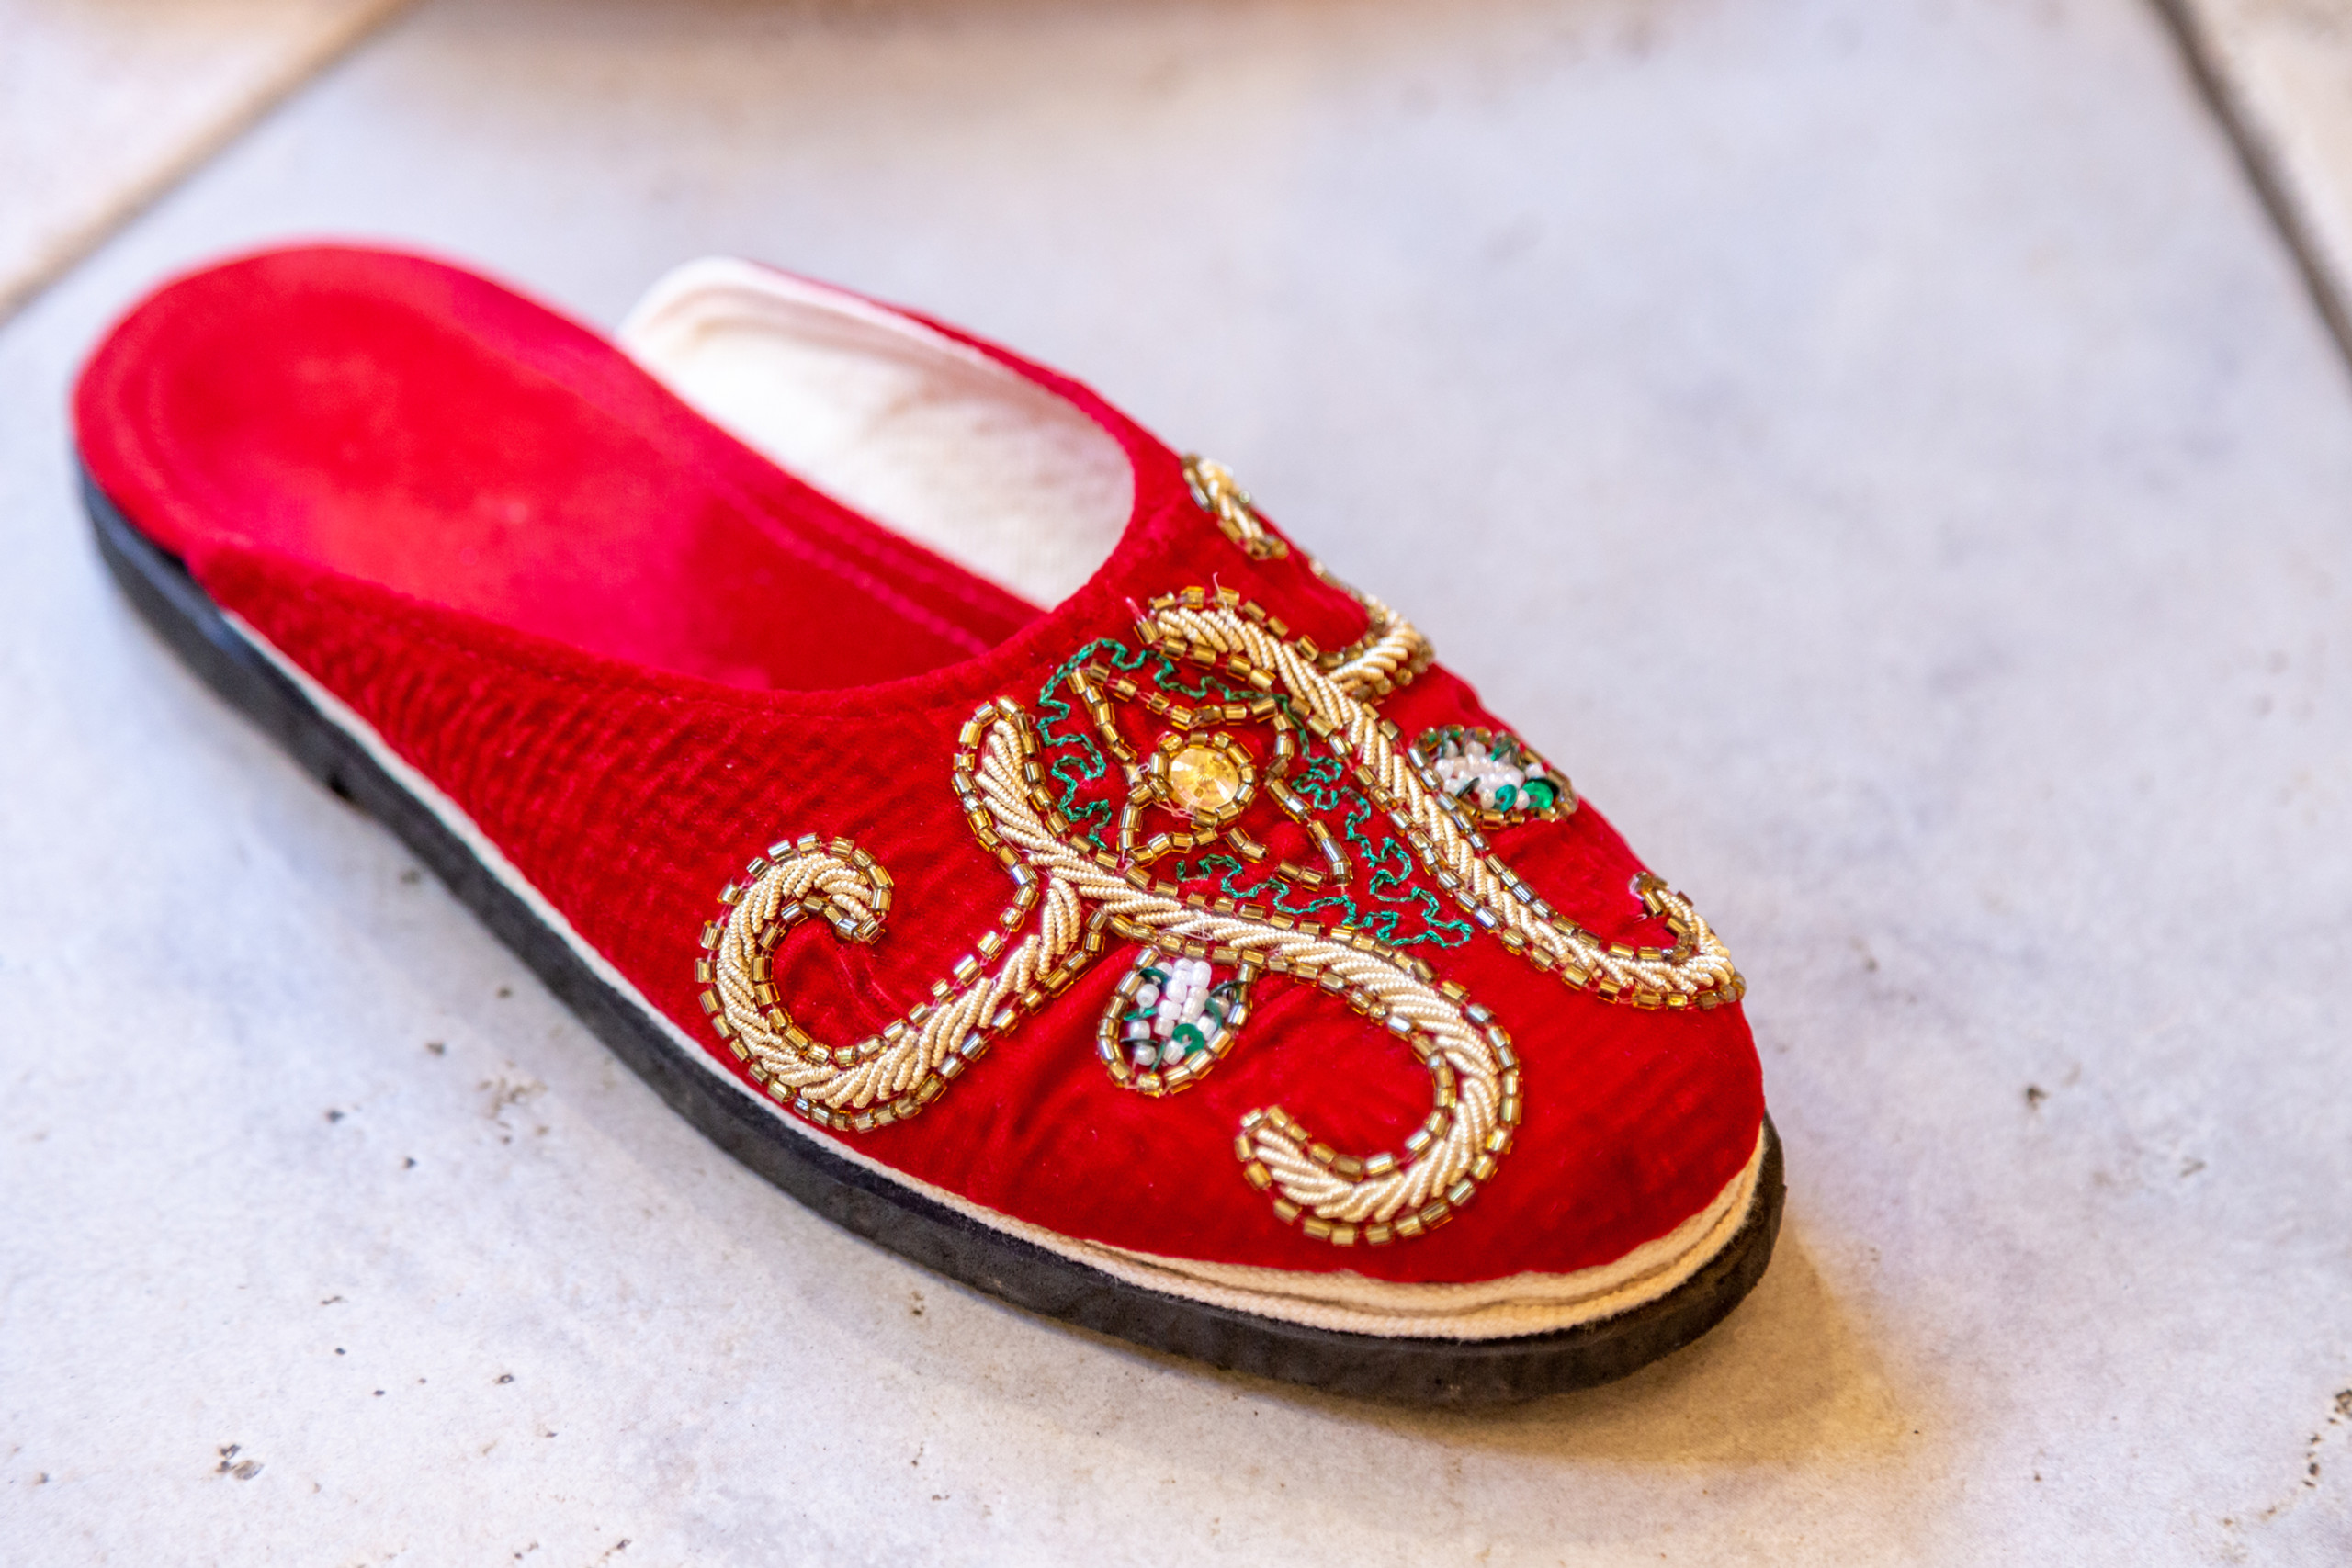 The bride's custom-made Nepali slipper at the Hindu Ceremony at the ISKCON of DC in Potomac, Maryland.